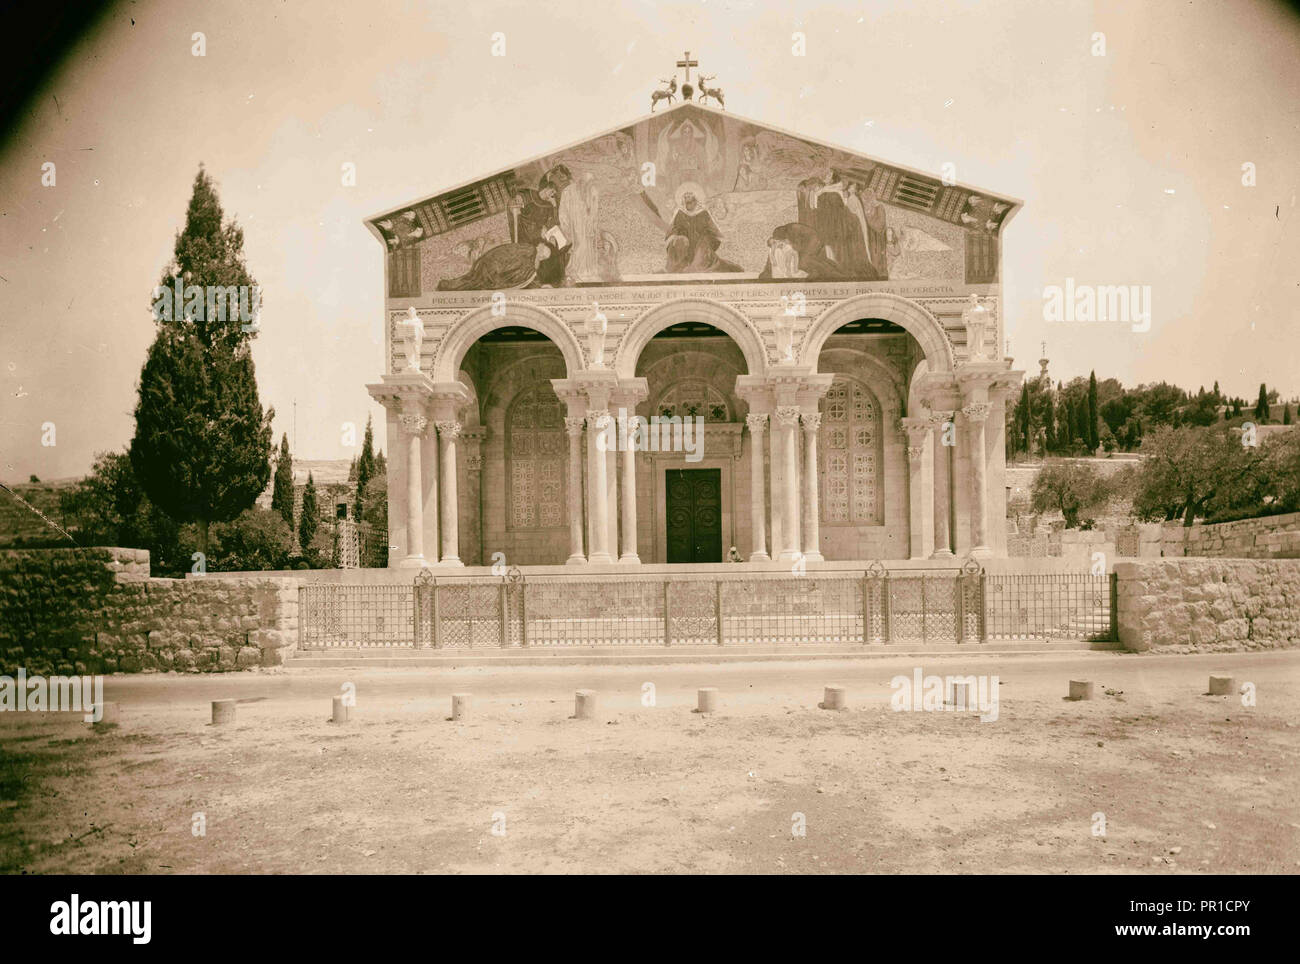 The Basilica of Gethsemane, Church of All Nations or Church of the Agony The fa ade showing portico and colorful mosaics. 1924 - Stock Image